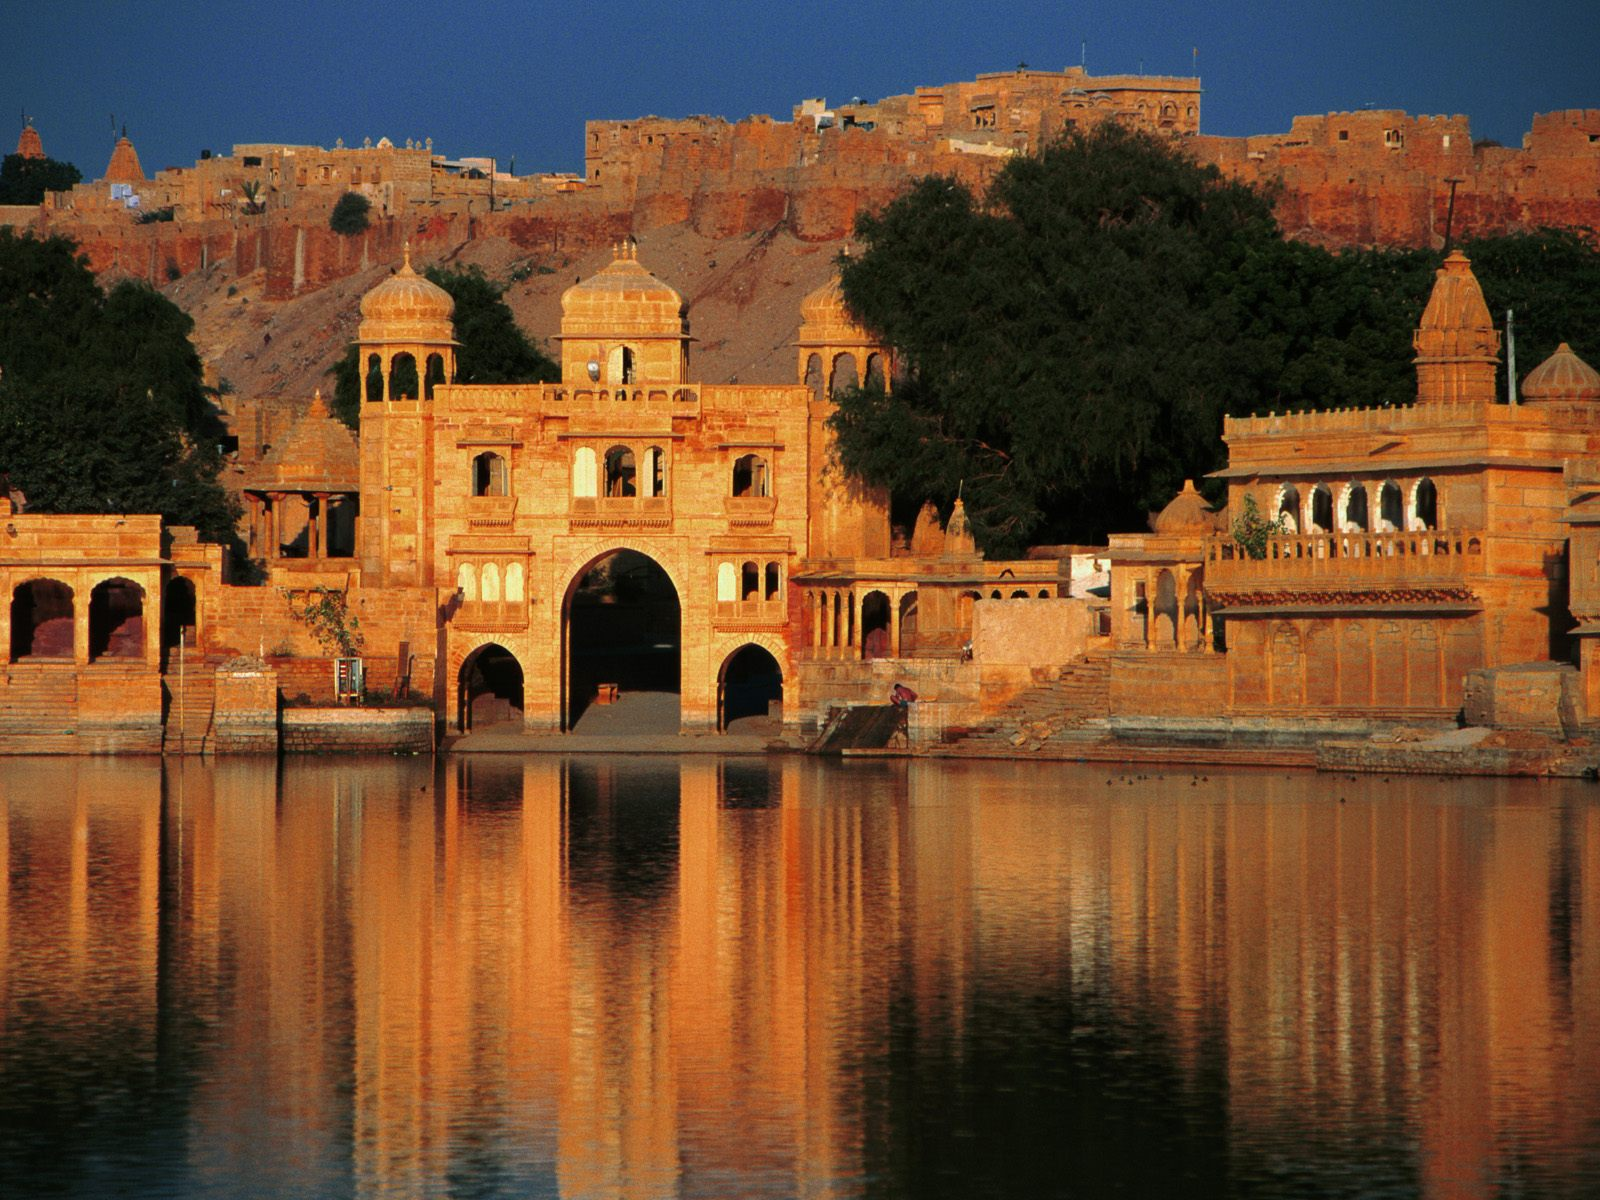 A_Shiva_Temple_and_Tilon_Gate_on_the_banks_of_Gadi_Sagar,_Jaisalmer,_Rajasthan,_India